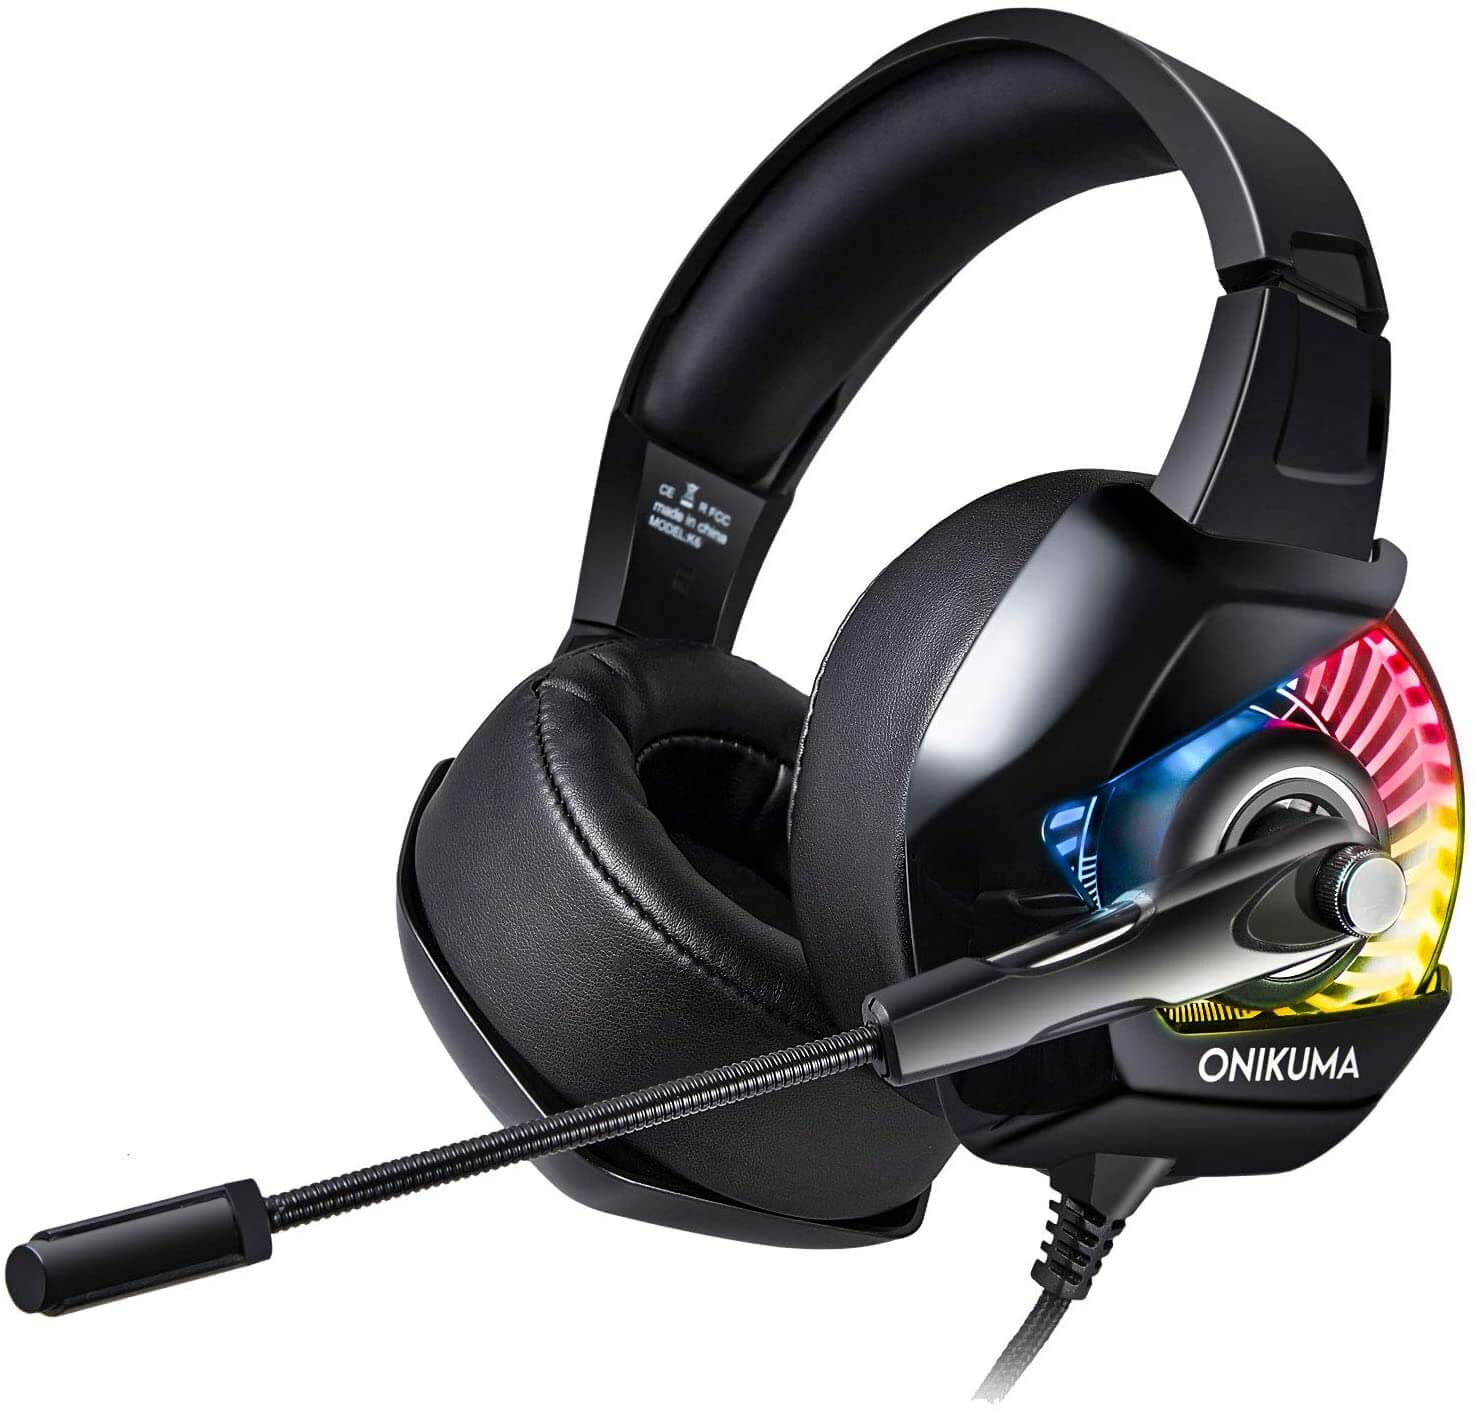 Onikuma Gaming Headset K6- Review